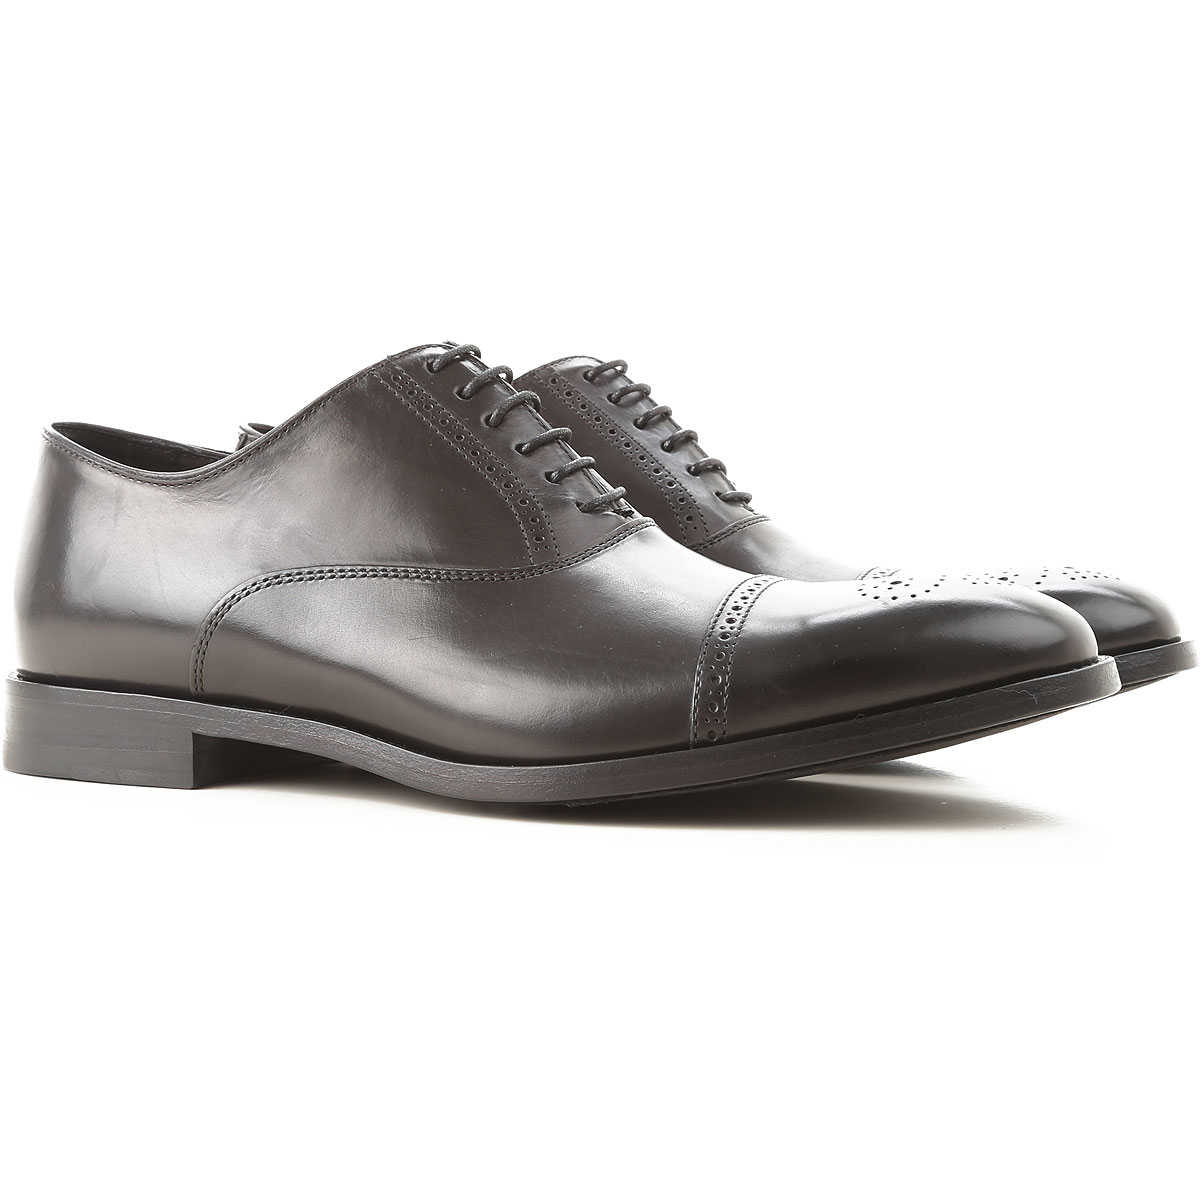 Paul Smith Lace Up Shoes for Men Oxfords